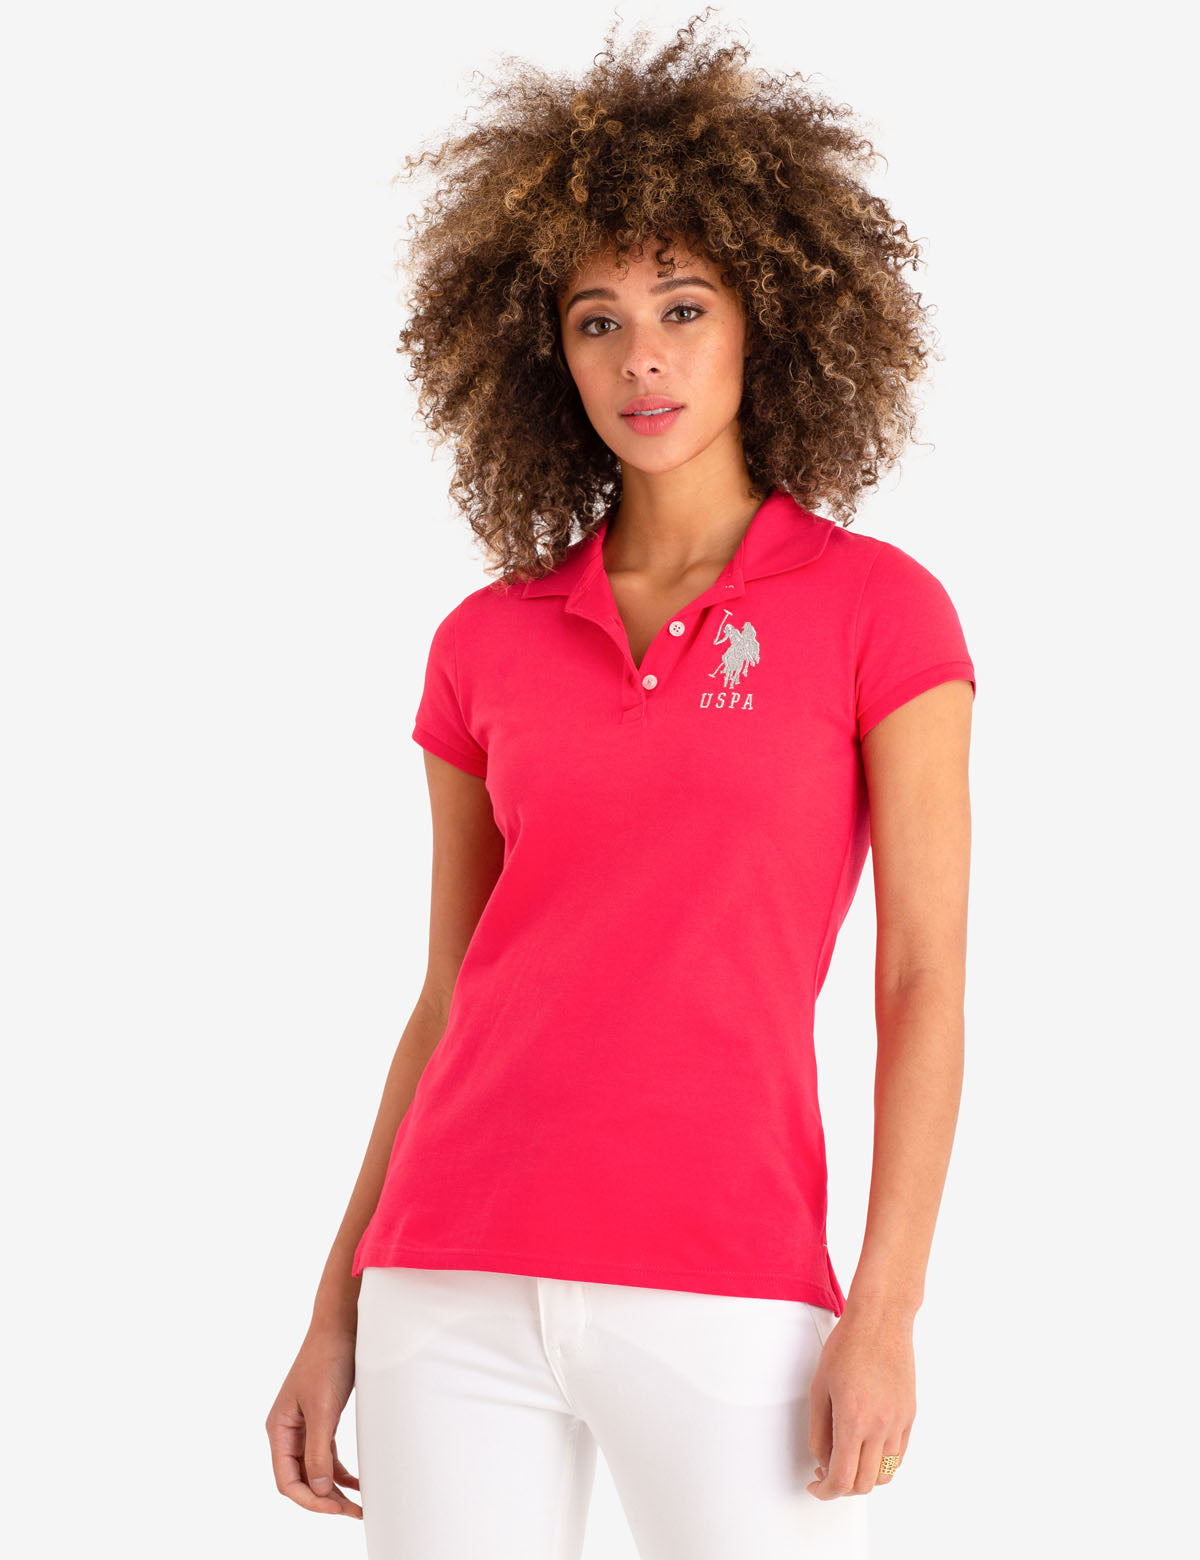 USPA METALLIC PRINT POLO SHIRT